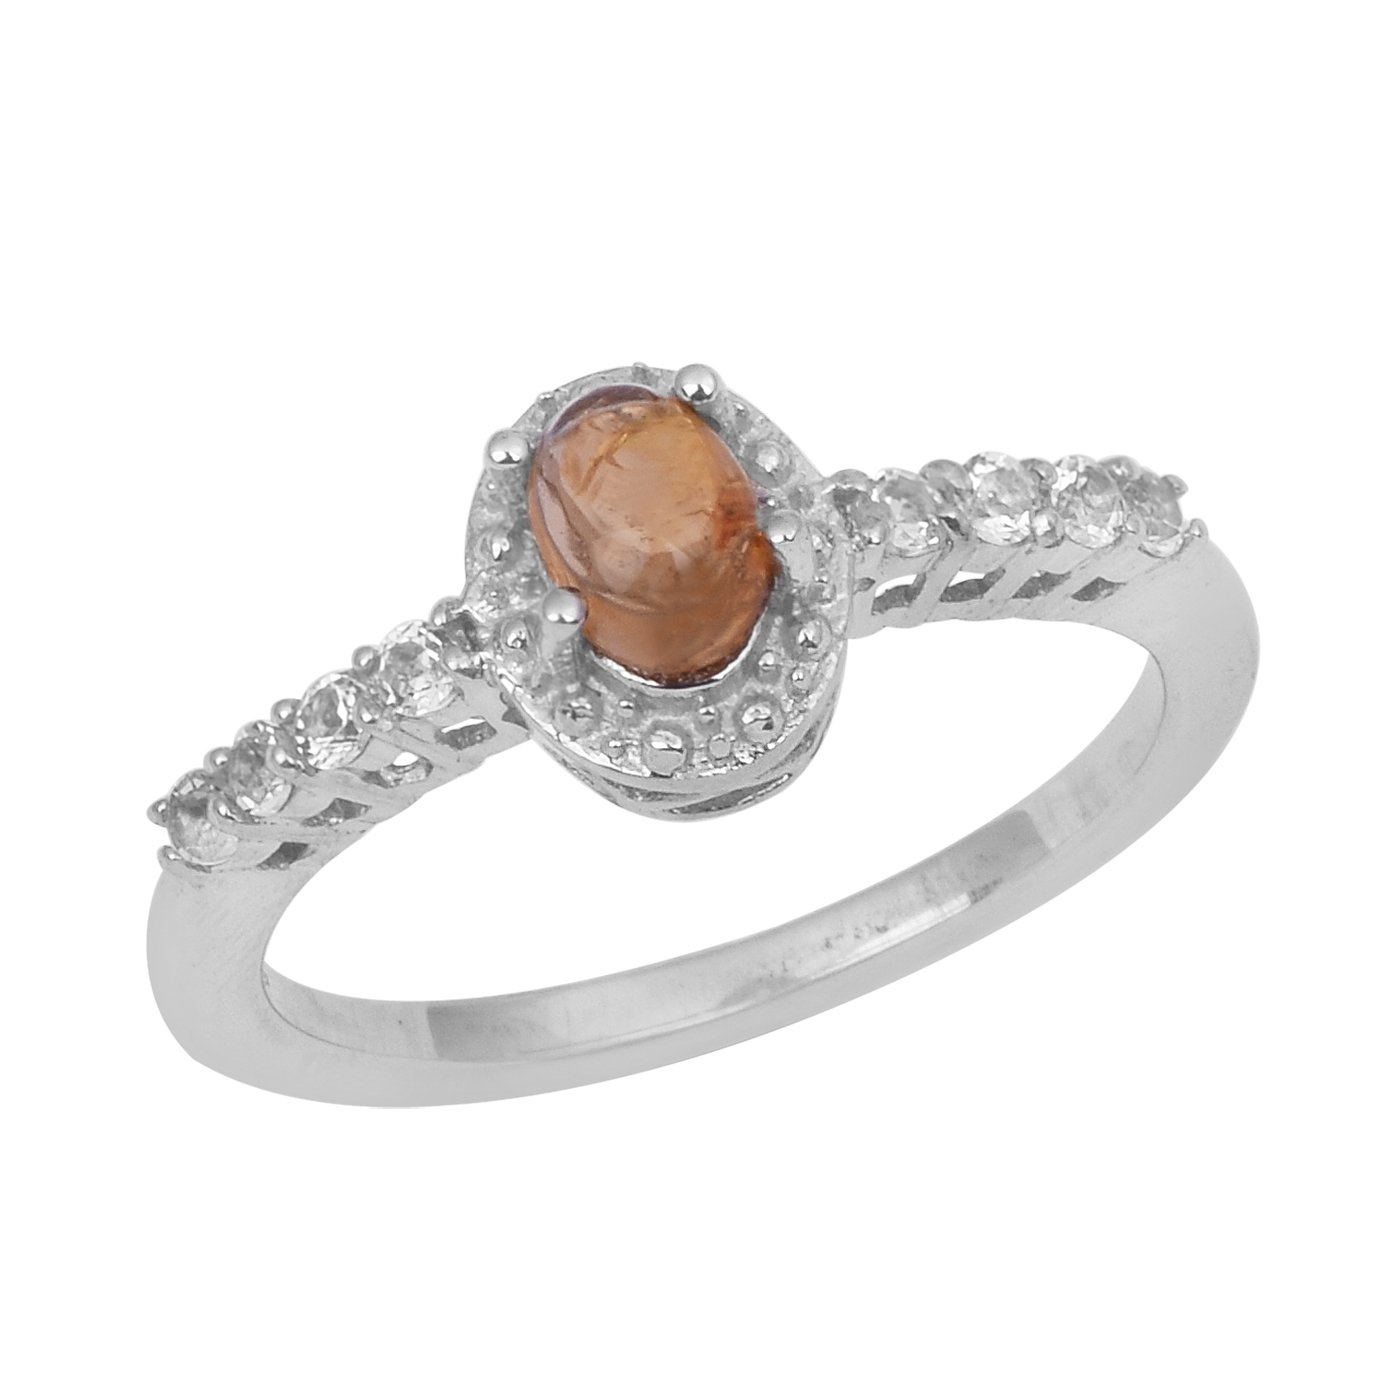 Pink Rutile Quartz /& White Topaz 925 Sterling Silver Solitaire Accents Halo Engagement Rings for Her